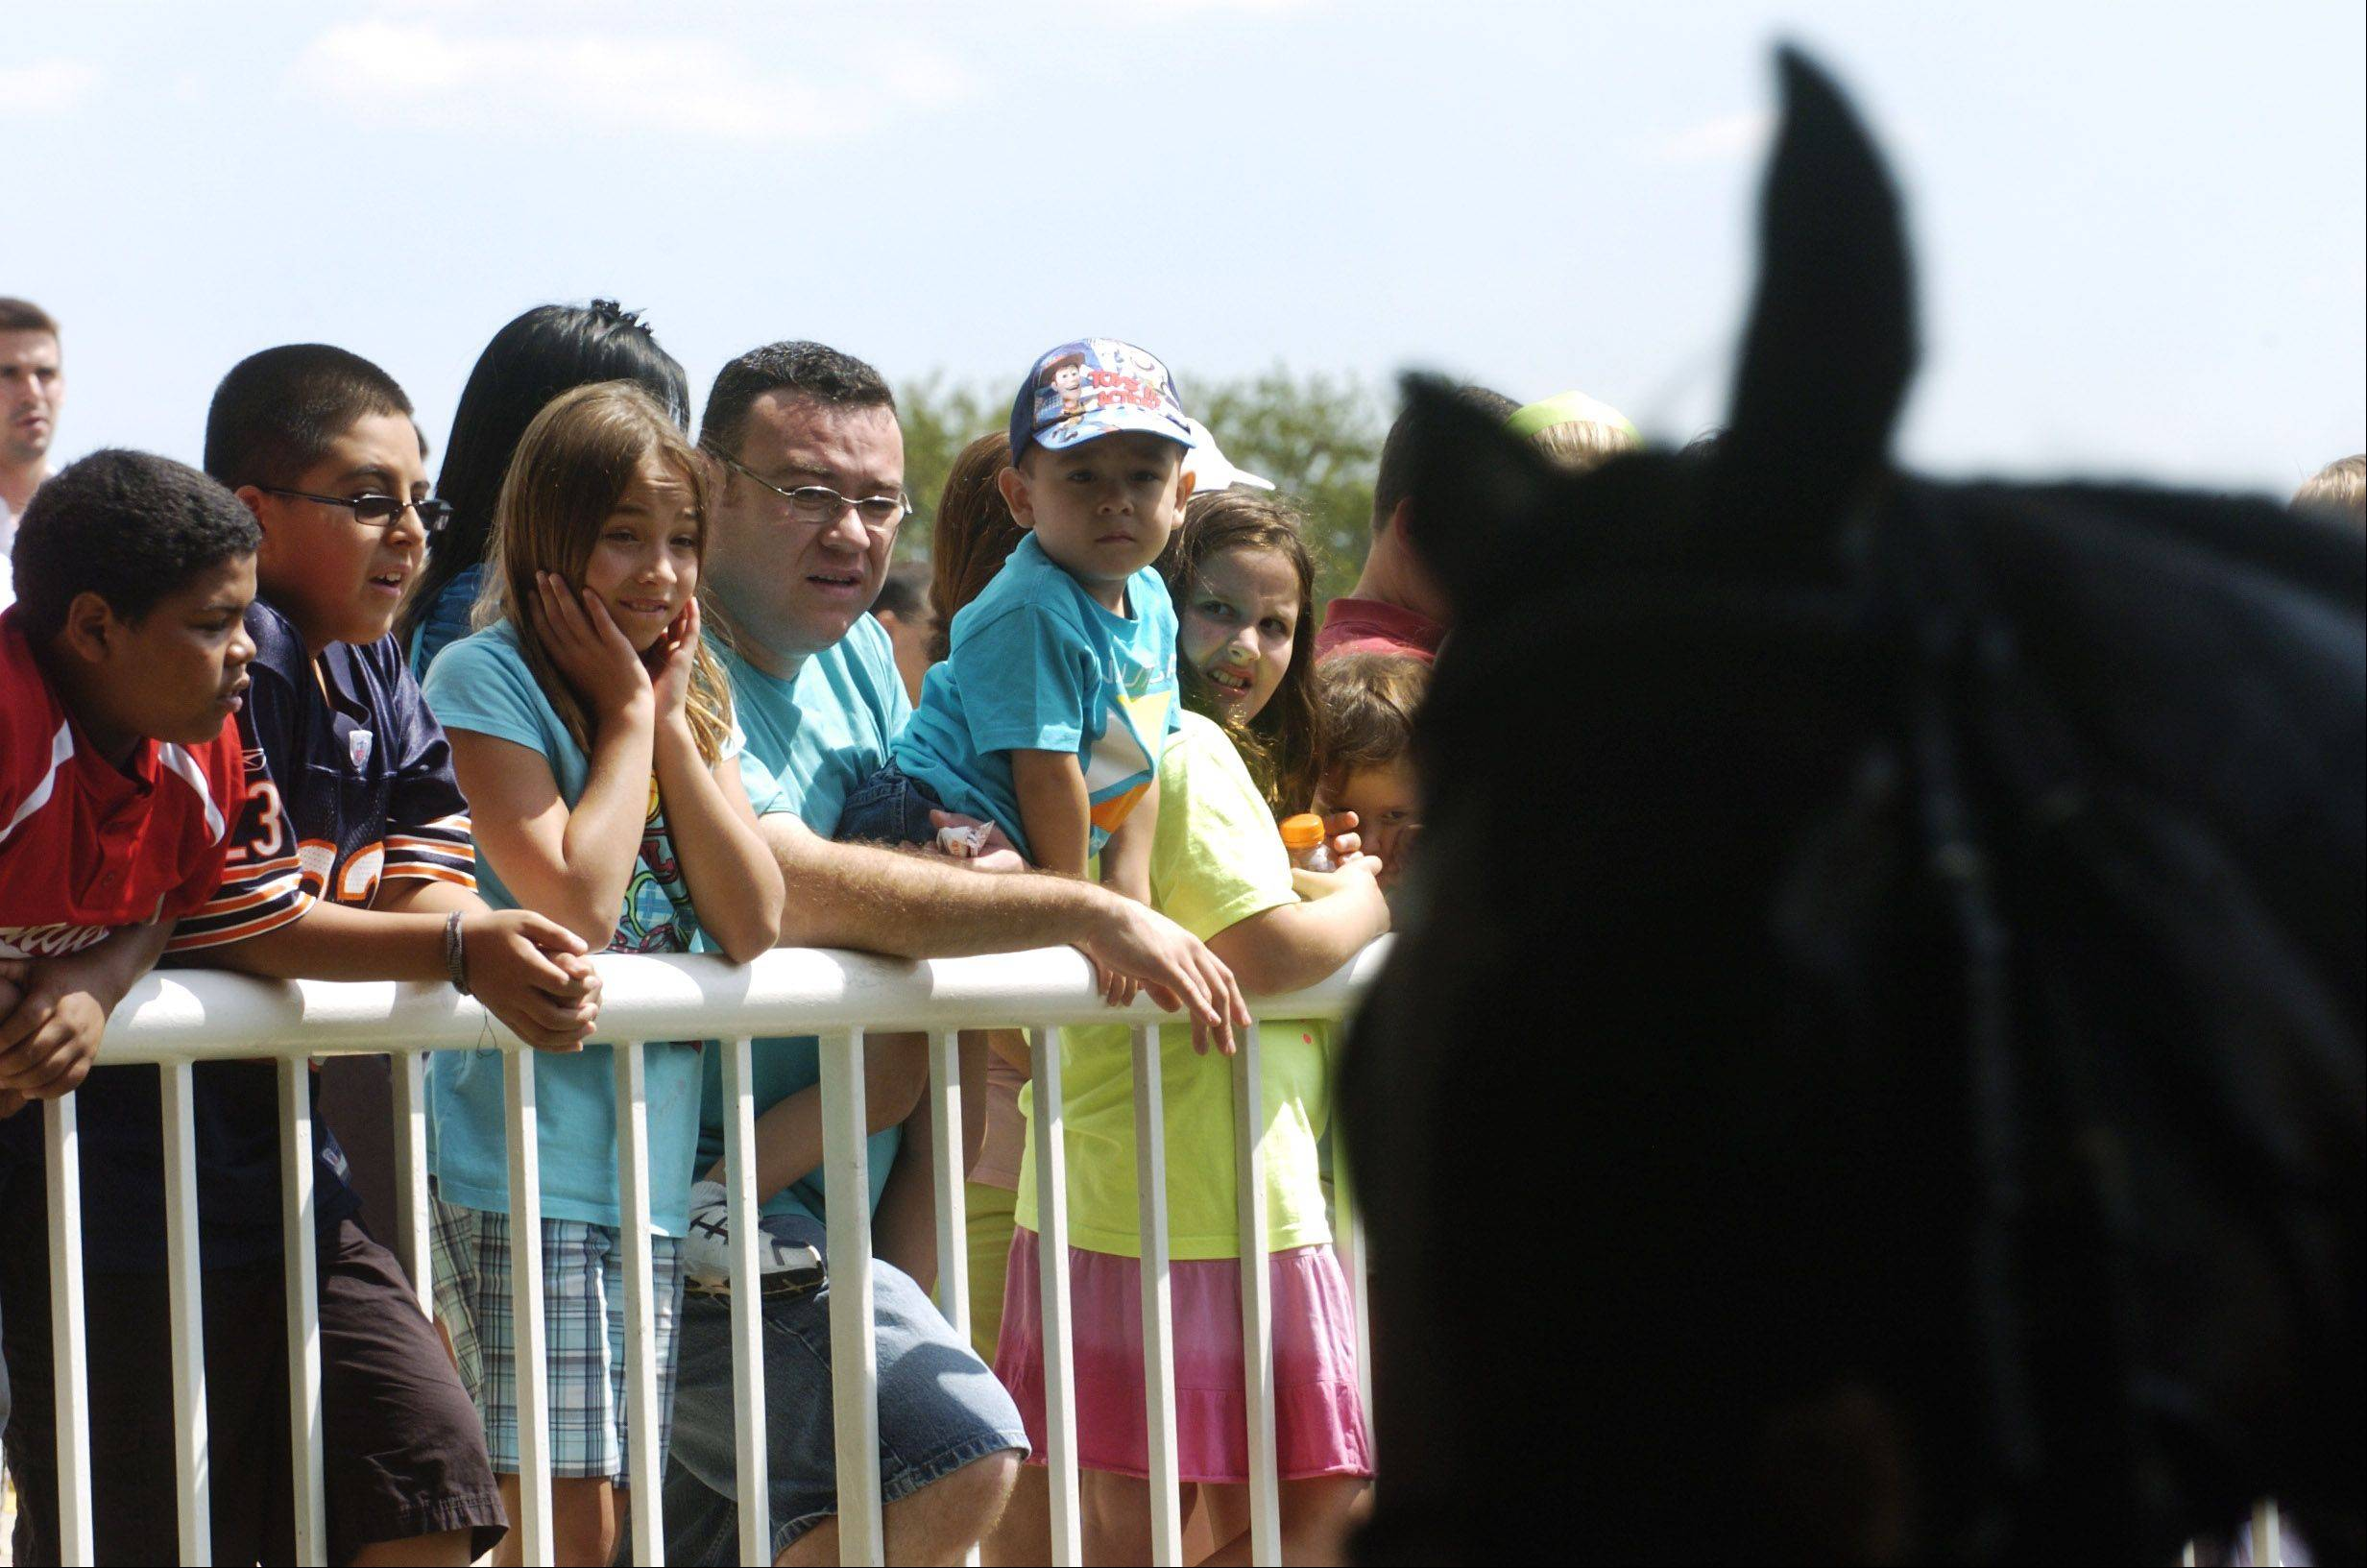 Arlington Park will hosts its final graded stakes race of its season with the Grade III Pucker Up Stakes on Saturday. Besides that $175,000 purse race, the weekend card also includes two Illinois-bred races worth $65,000.